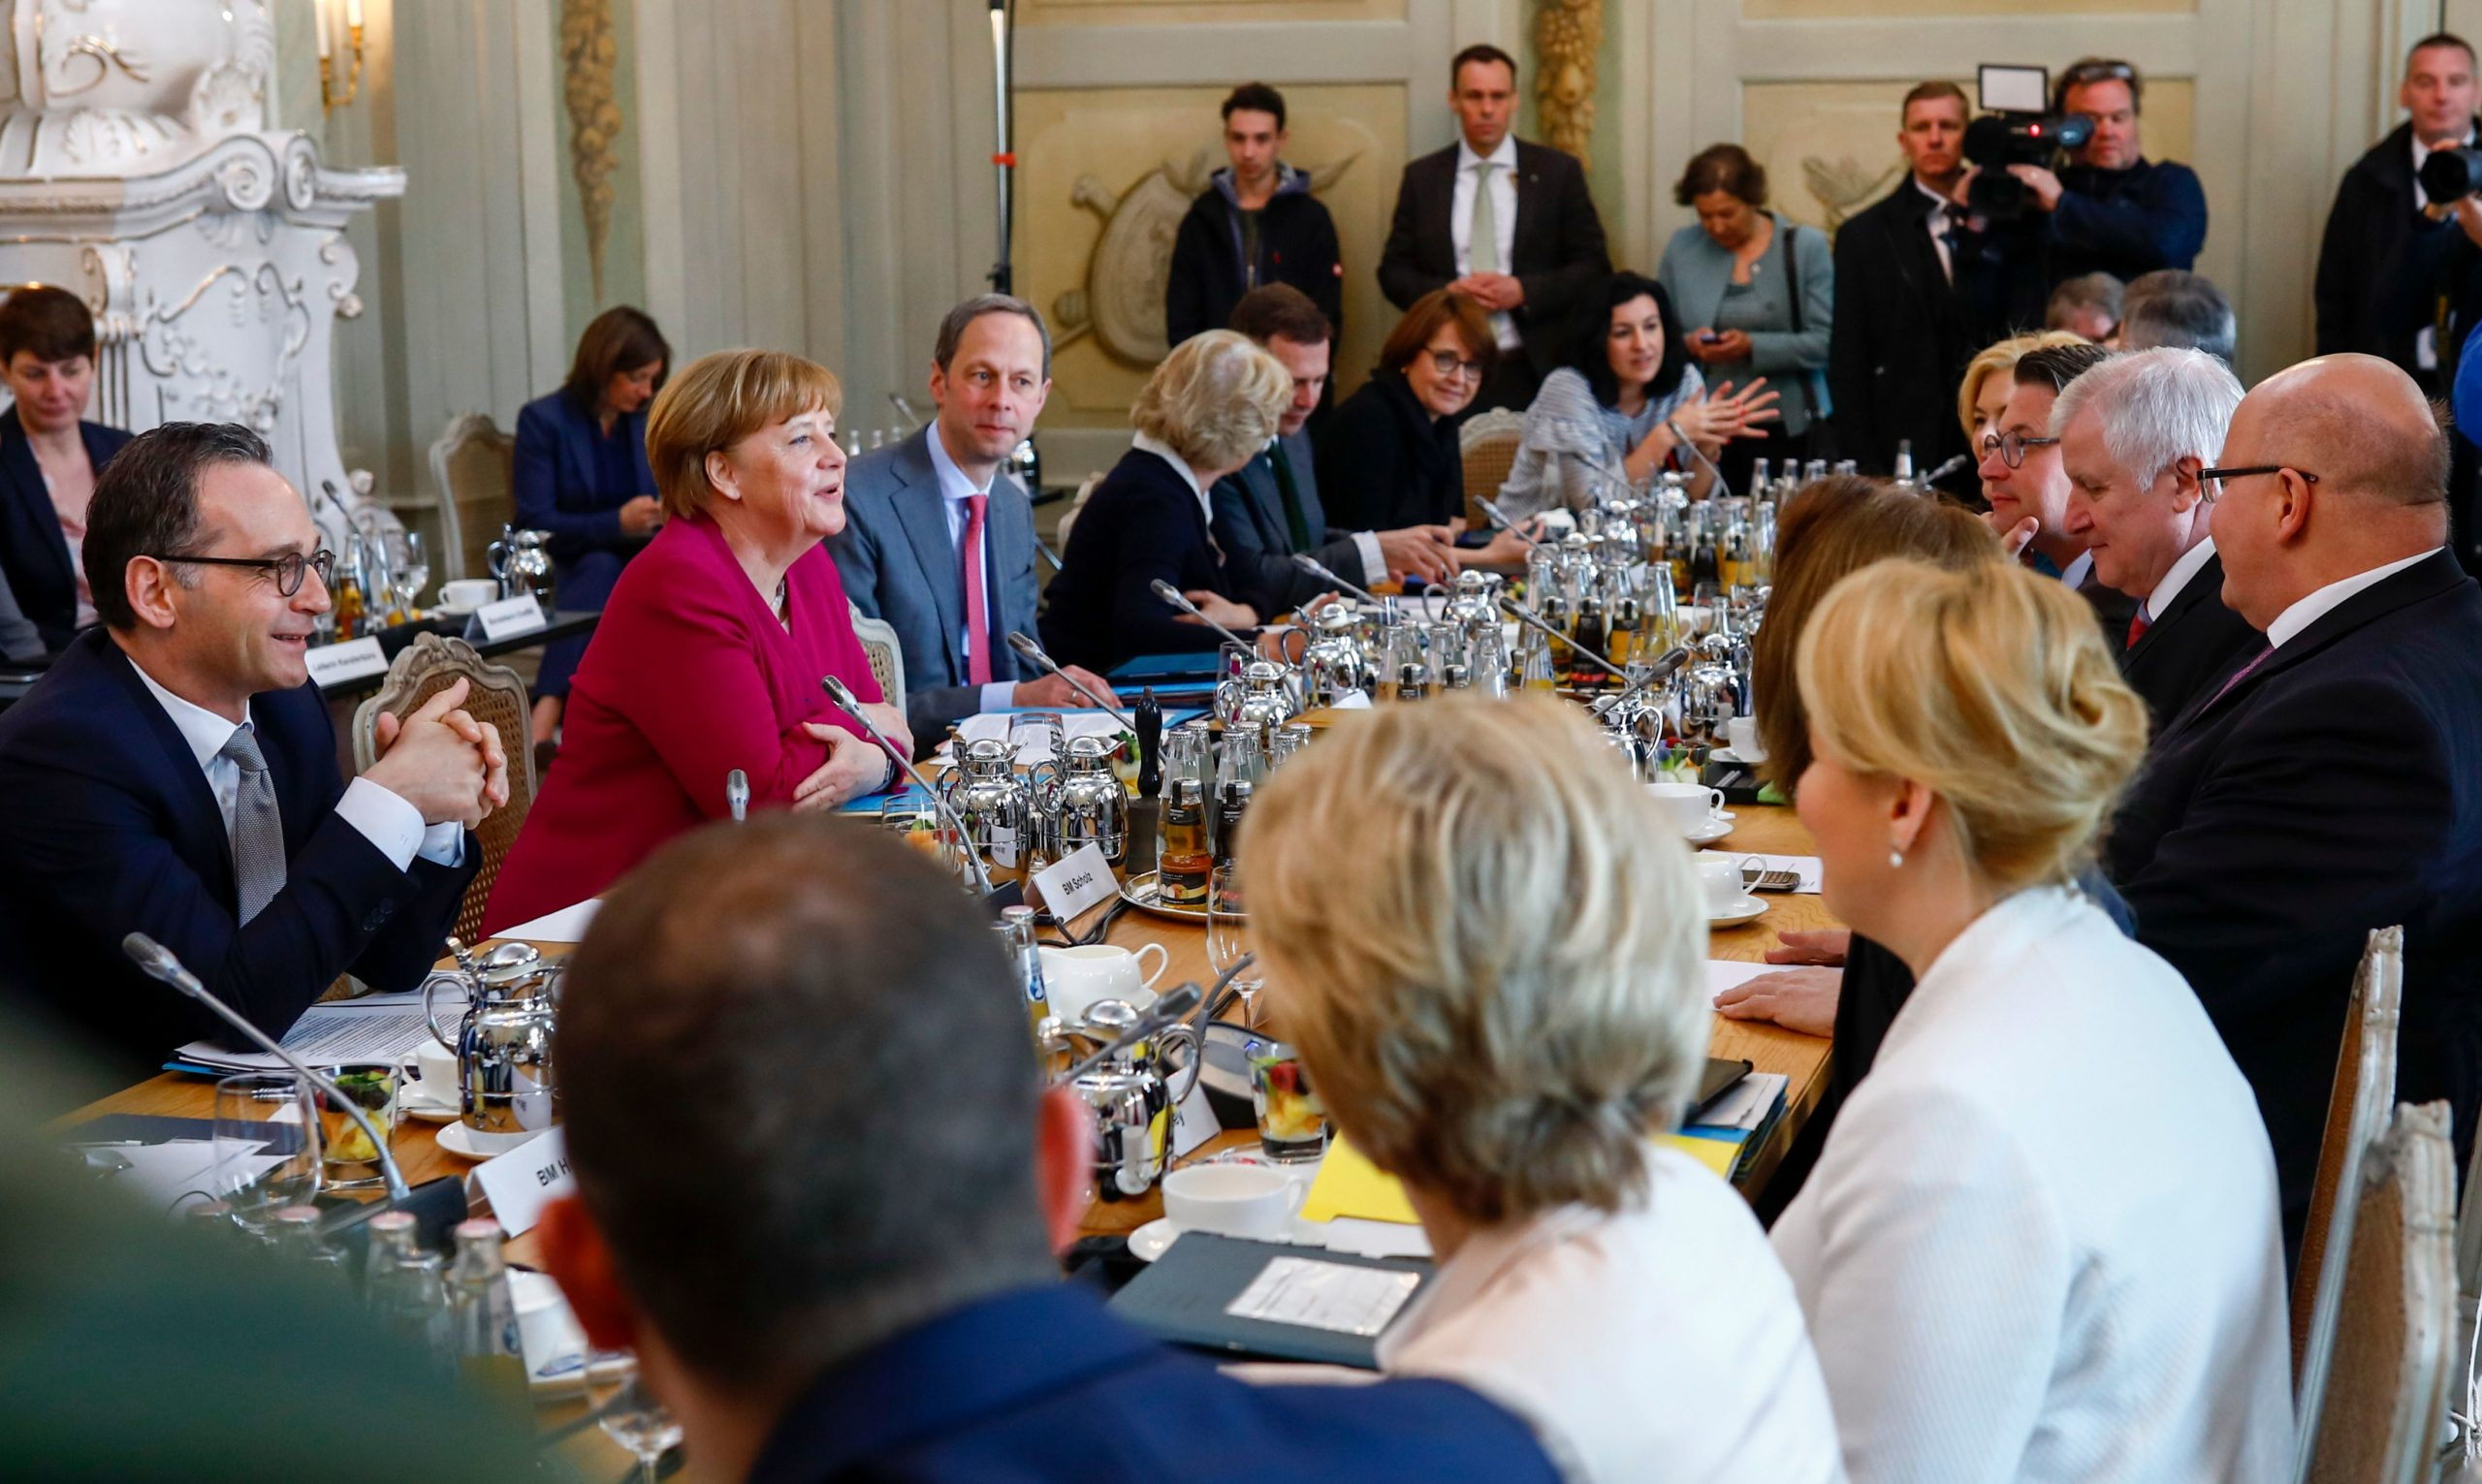 German Chancellor Angela Merkel sits among members of the government ahead of a cabinet meeting on April 11, 2018. (Axel Schmidt/AFP via Getty Images)